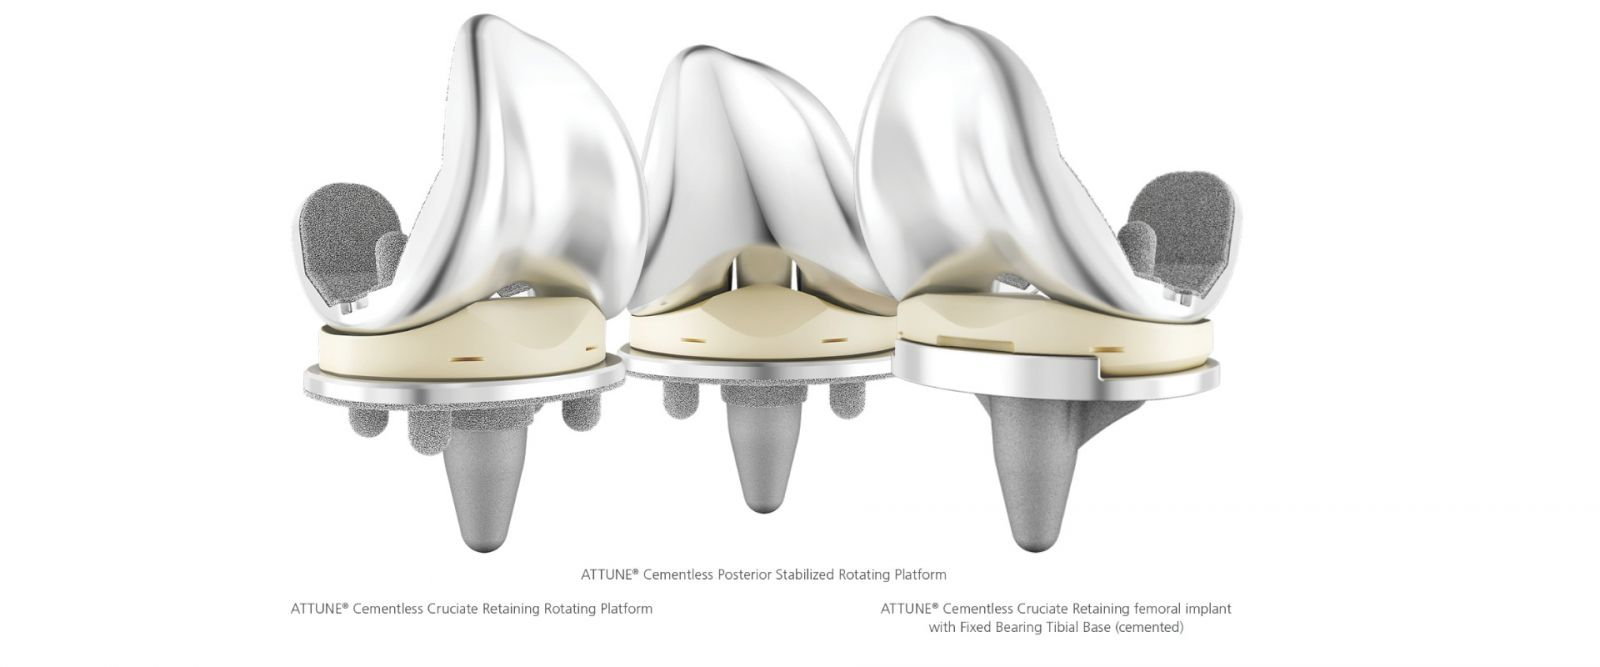 DePuy Synthes ATTUNE Cementless - ORTHOWORLD